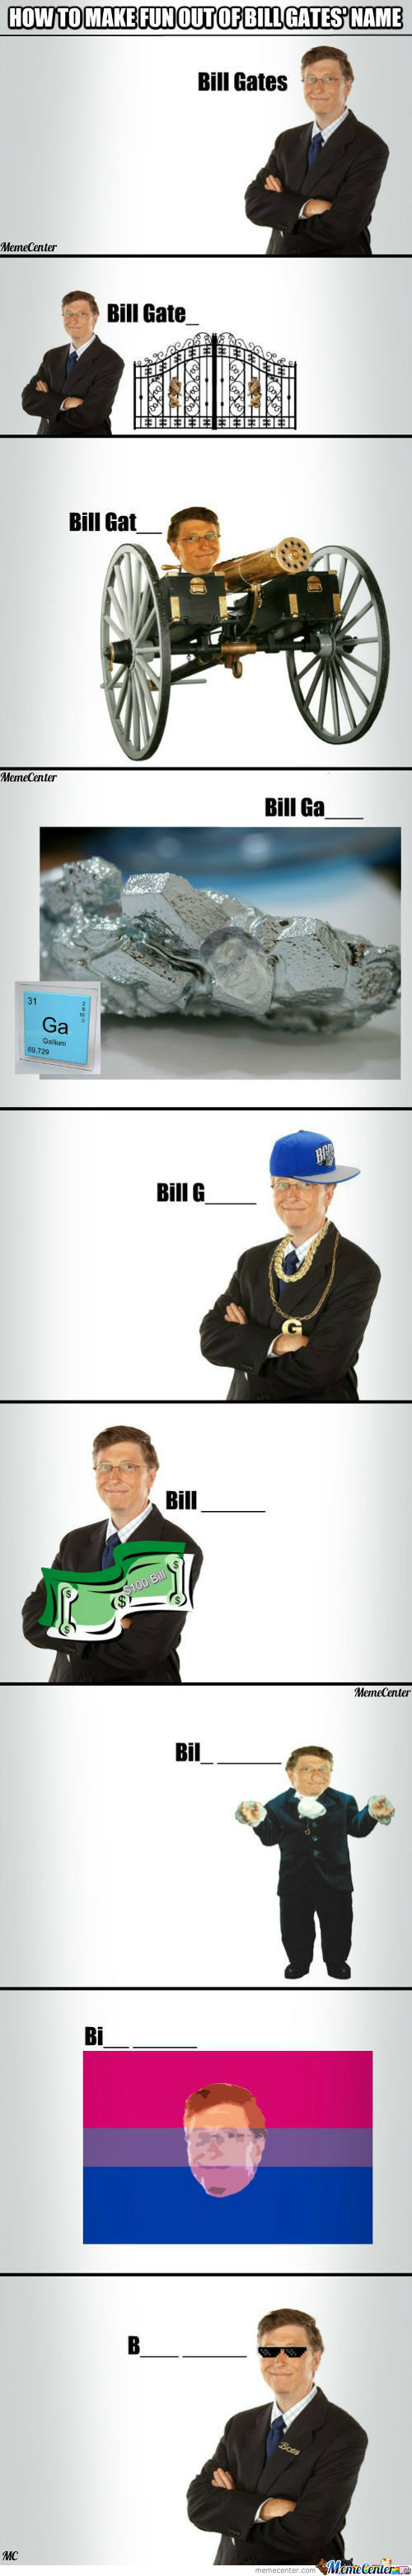 How To Make Fun Out Of Bill Gates' Name.